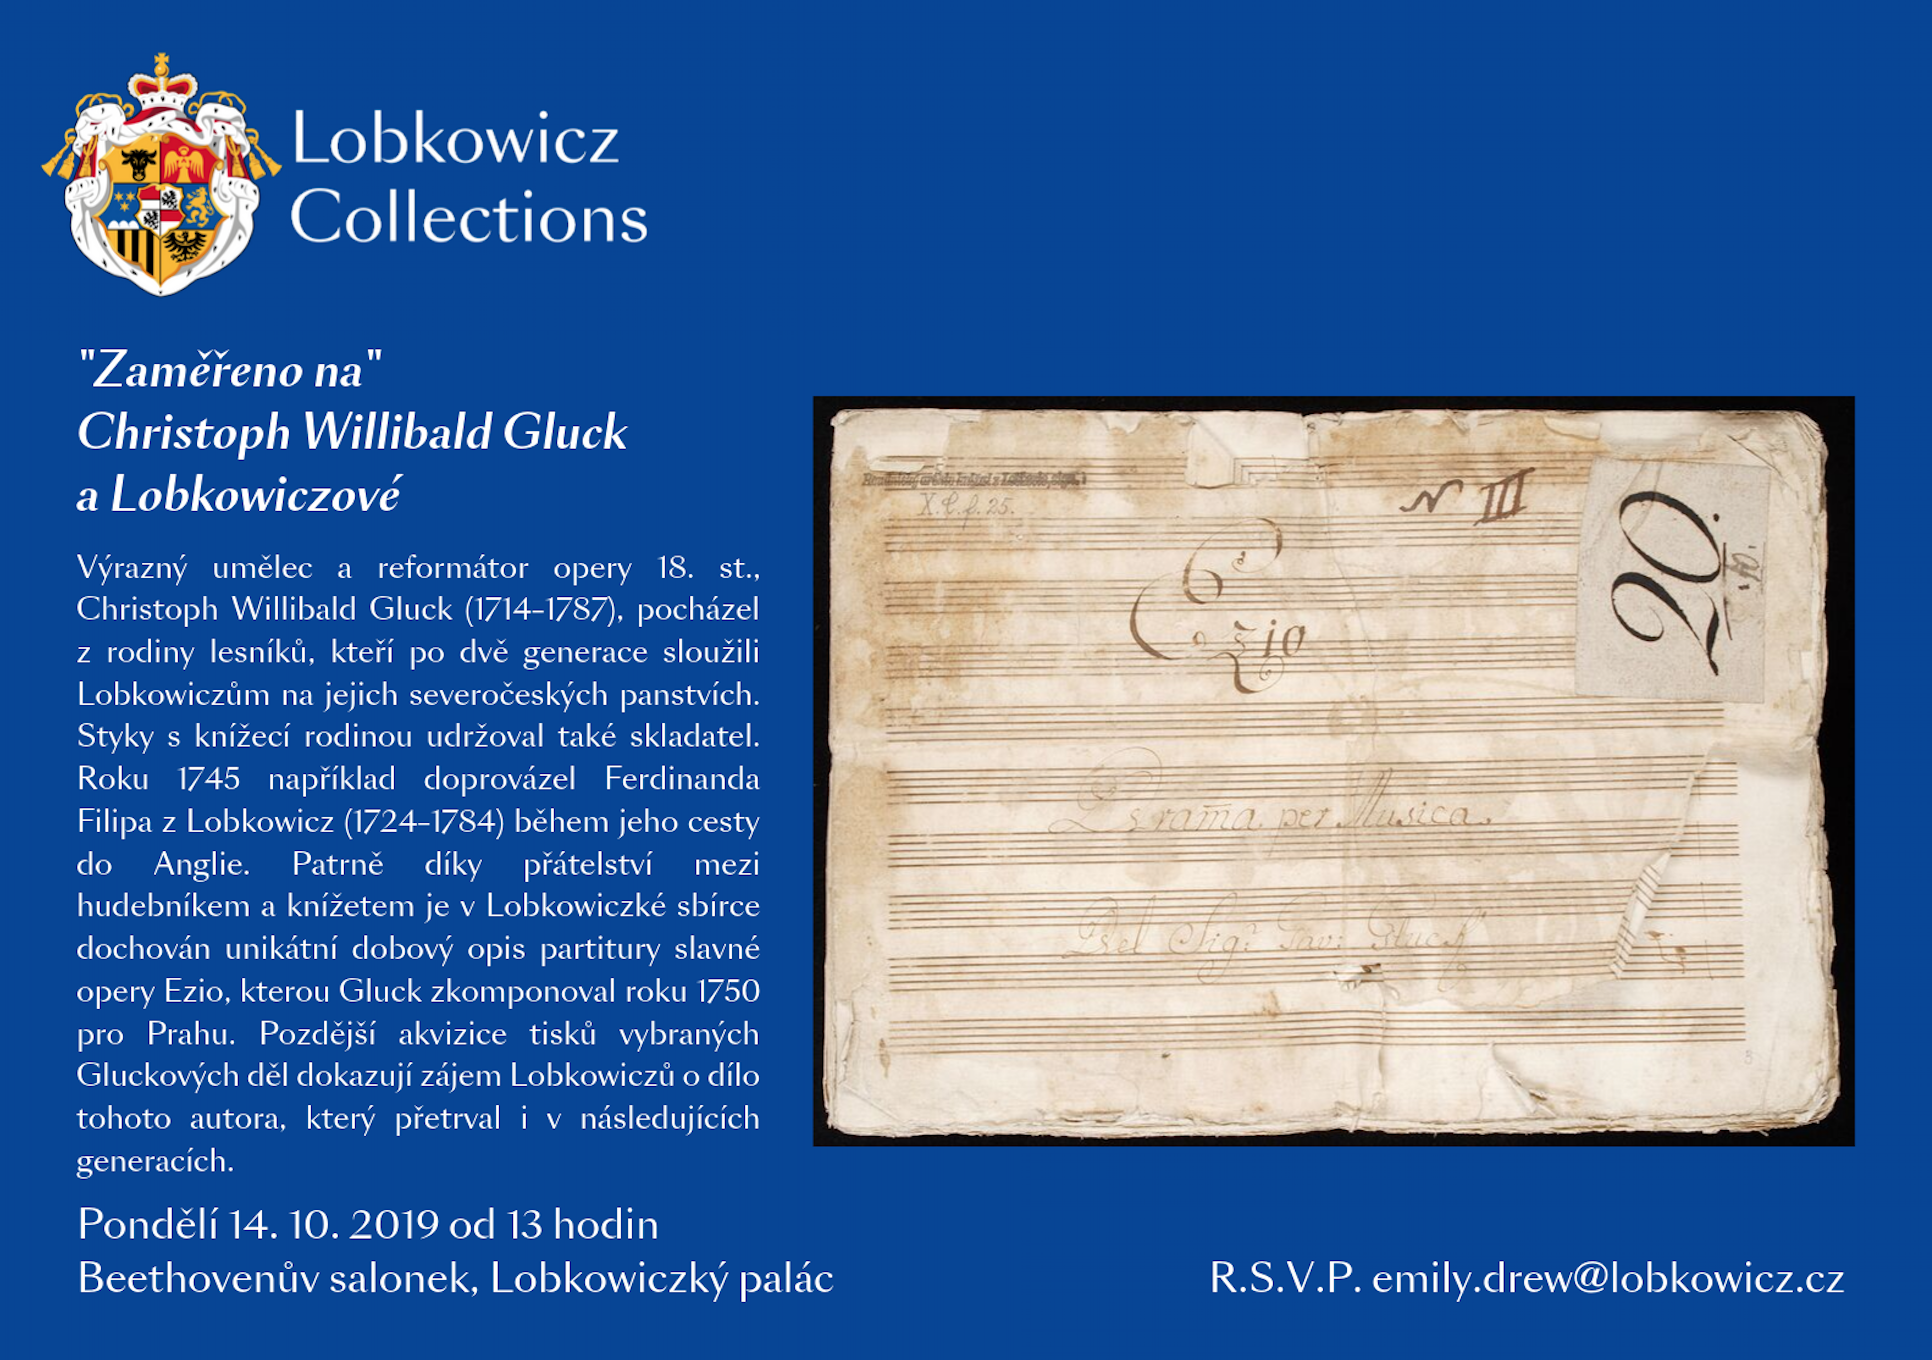 This Curator Spotlight was held in the Beethoven Room at the Lobkowicz Palace on Monday, October 14th at 13:00.